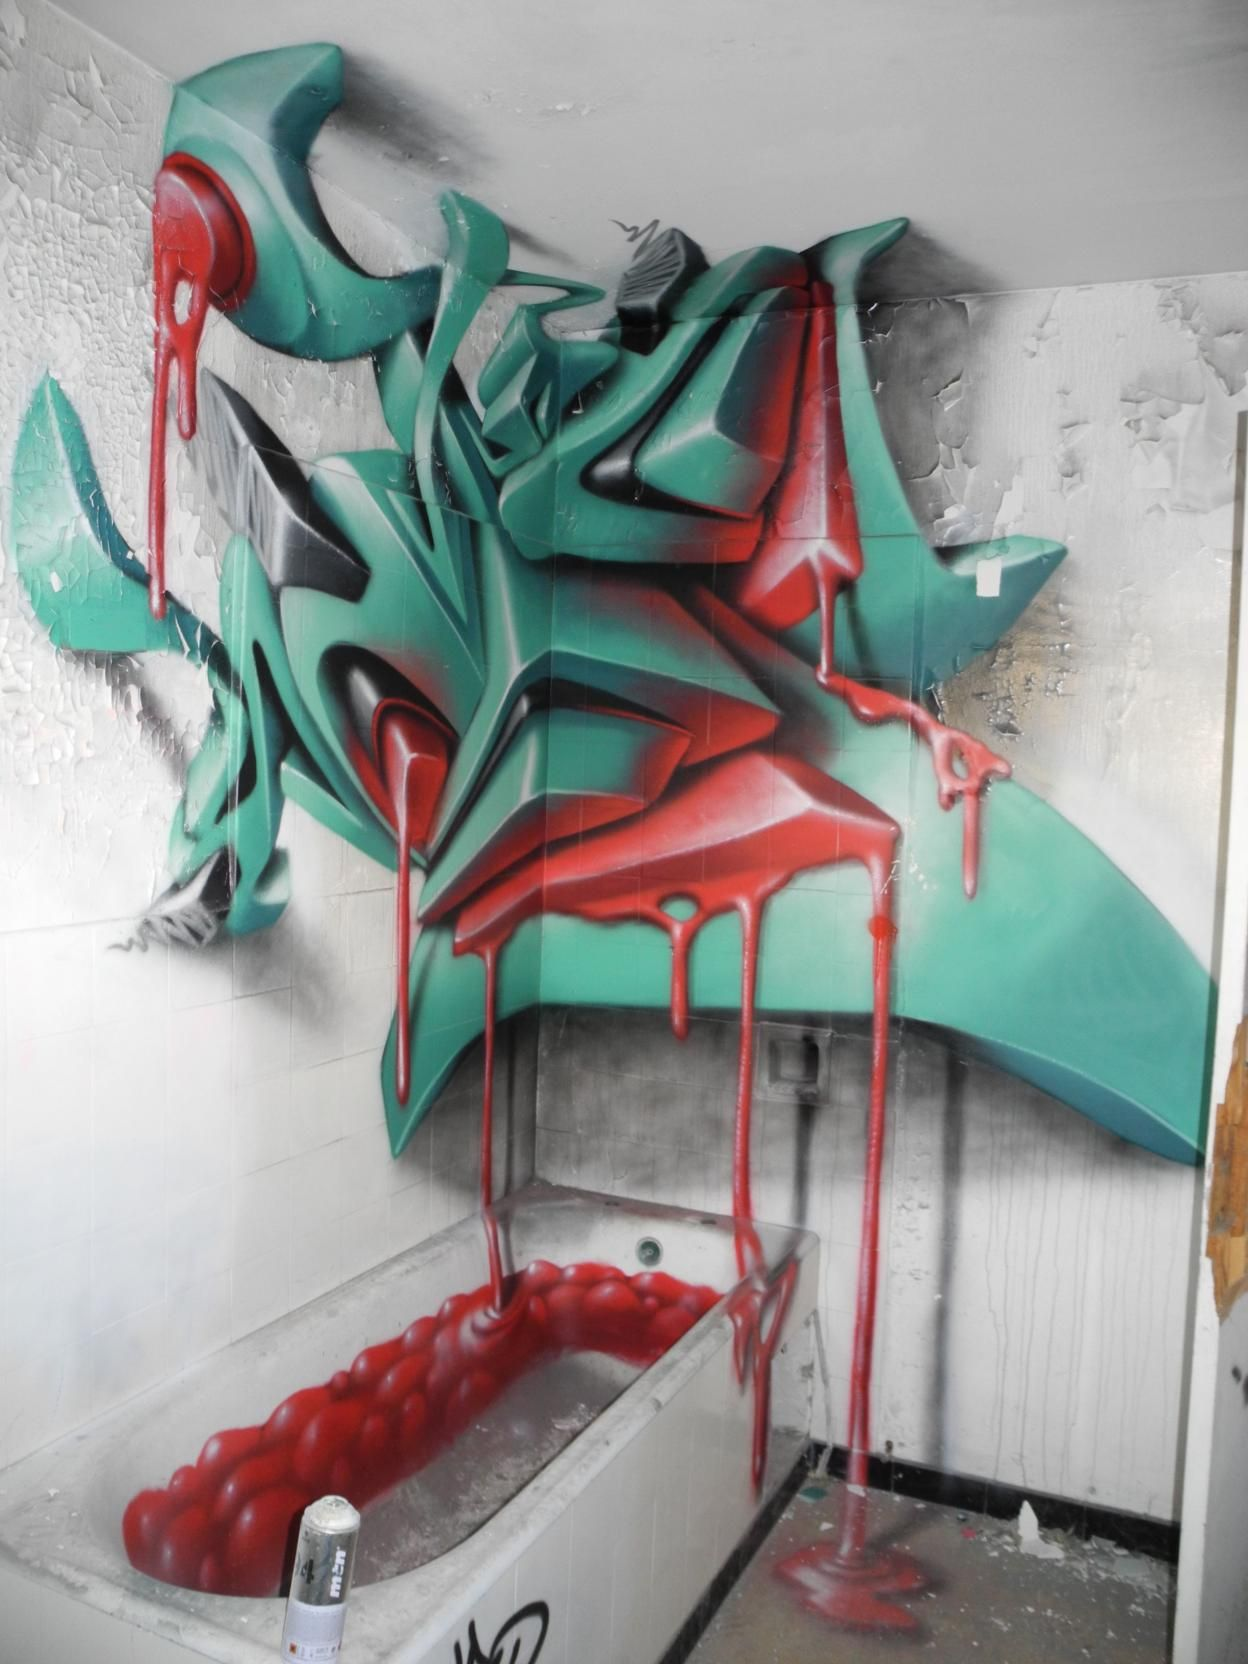 Ridiculously amazing new piece from kers one france